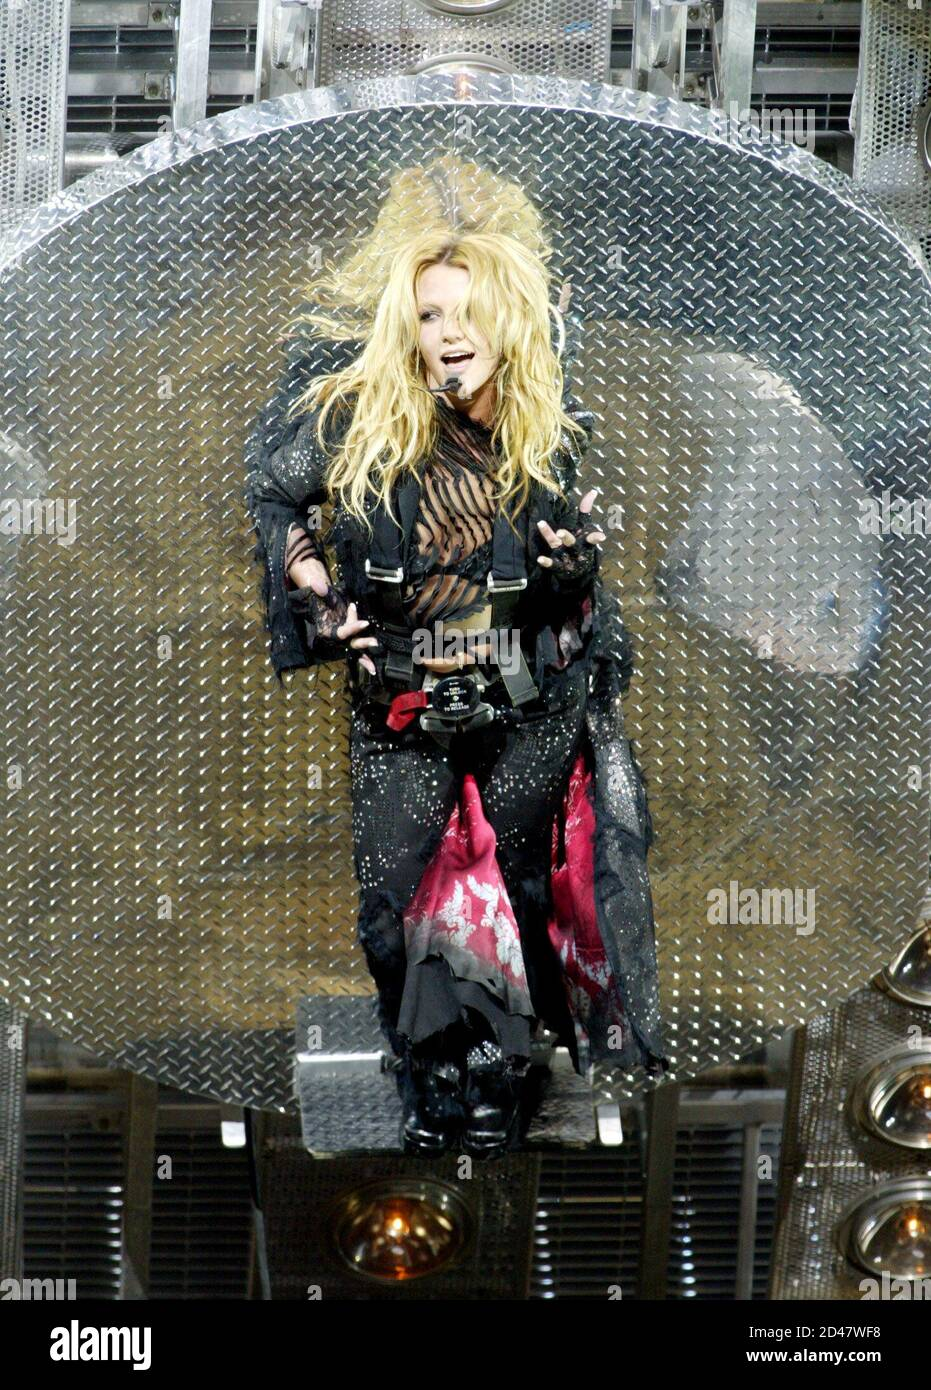 britney-spears-emerges-on-a-spinning-pla